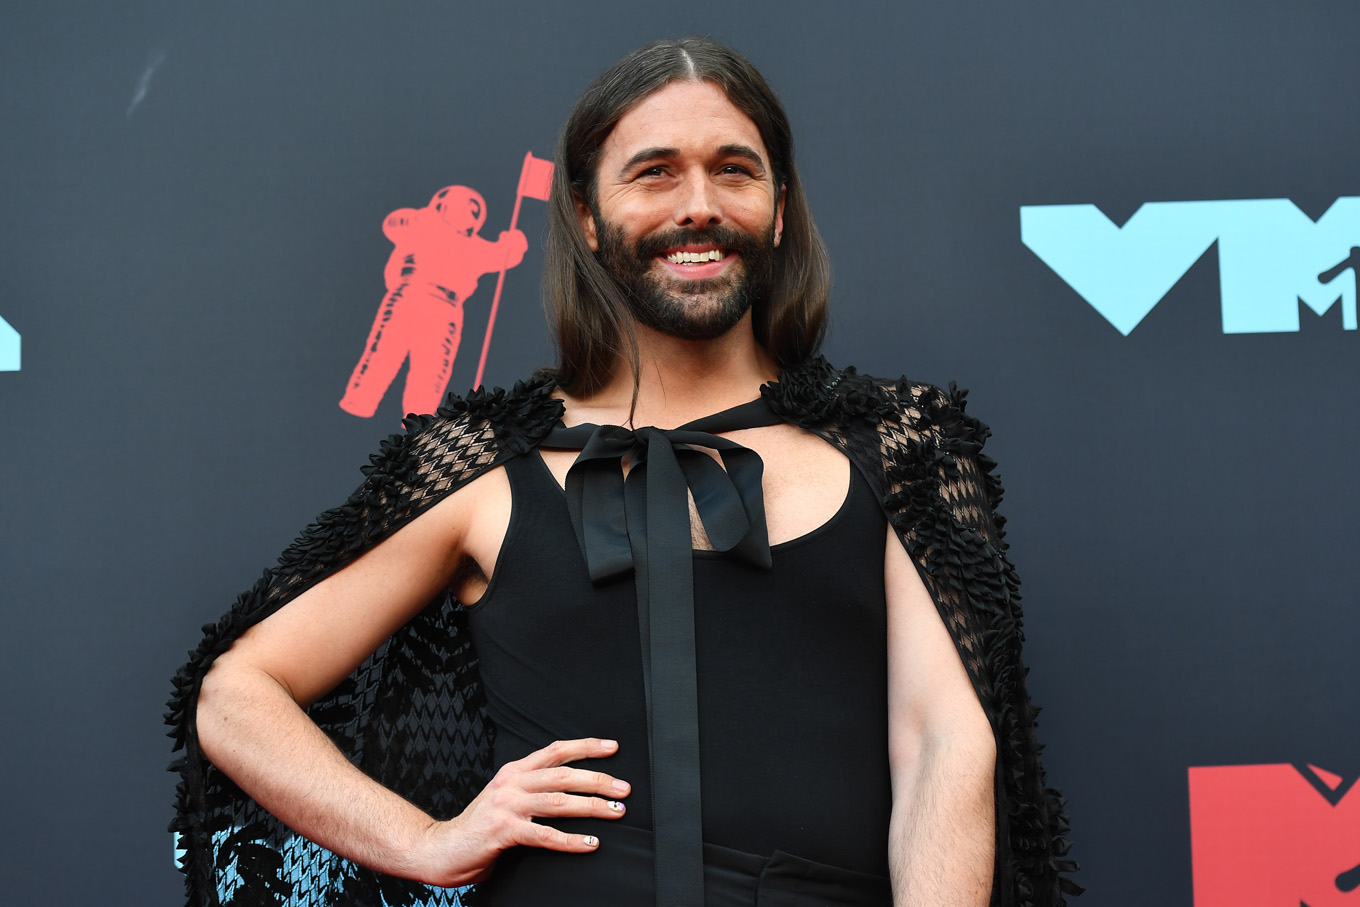 Celebrity HIV disclosures whittle away at stigma